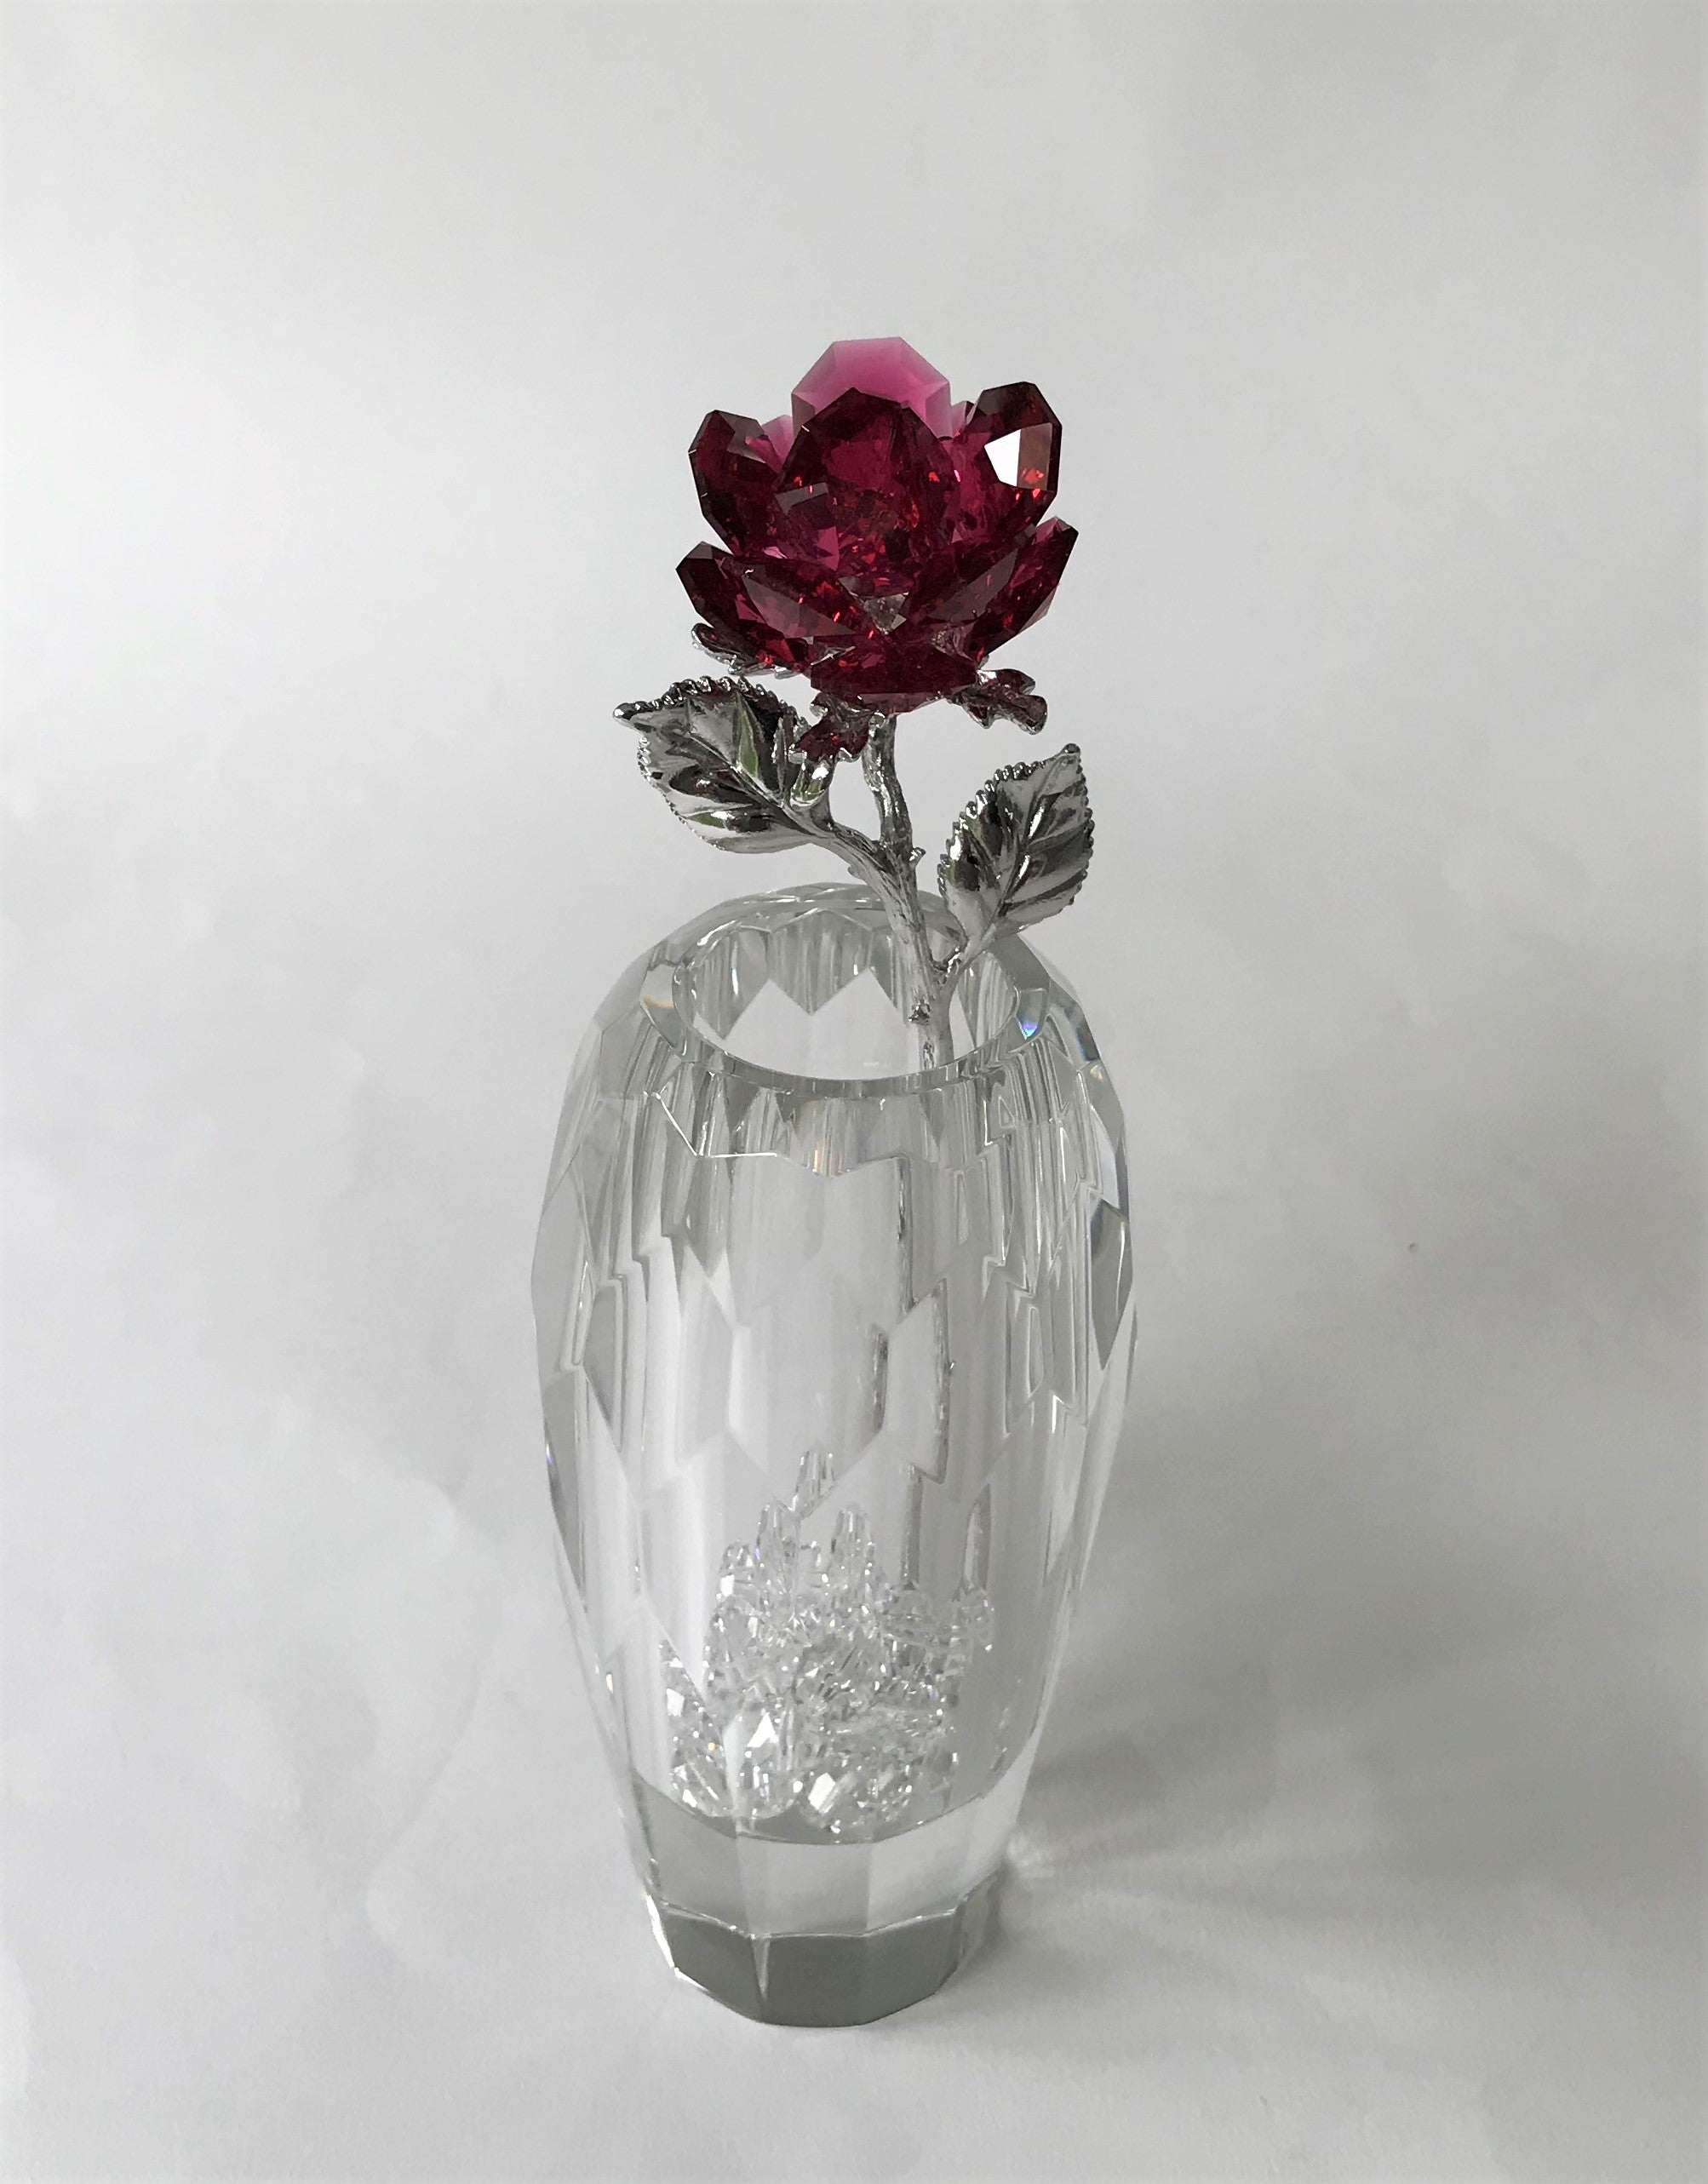 Red Crystal Rose Handcrafted By Bjcrystalgifts Using Swarovski Crystals In A Faceted Crystal Vase